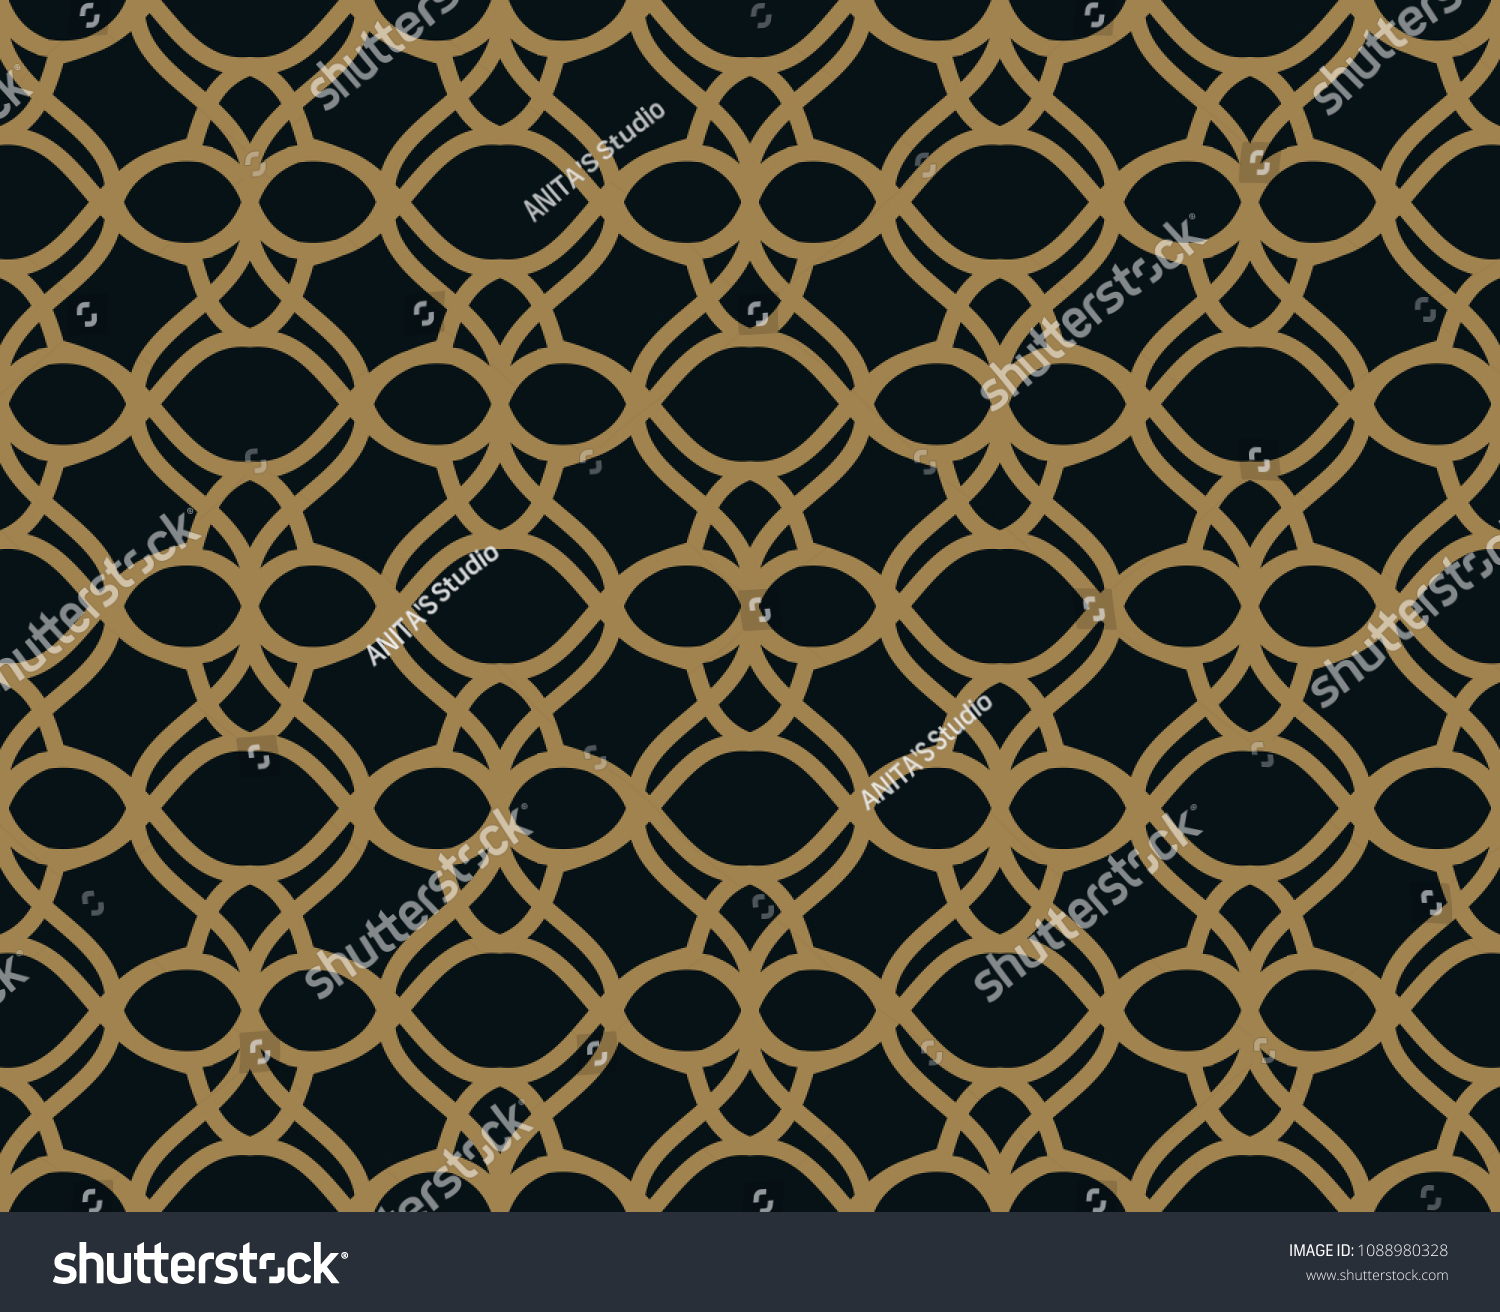 Elegant Linear Ornament Geometric Stylish Background Vector Repeating Texture